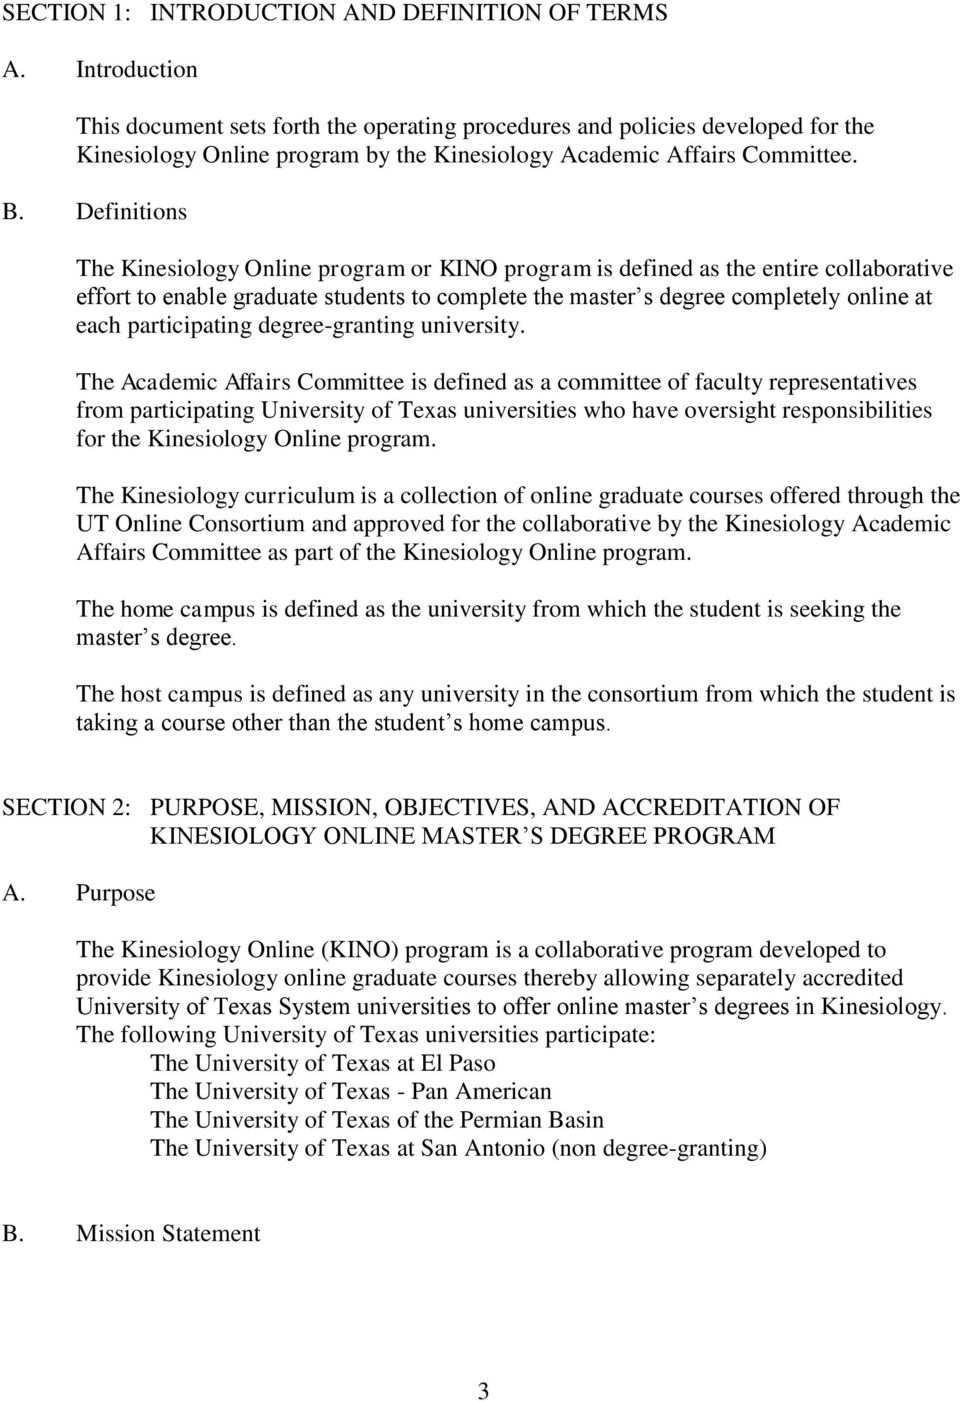 Definitions The Kinesiology Online program or KINO program is defined as the entire collaborative effort to enable graduate students to complete the master s degree completely online at each